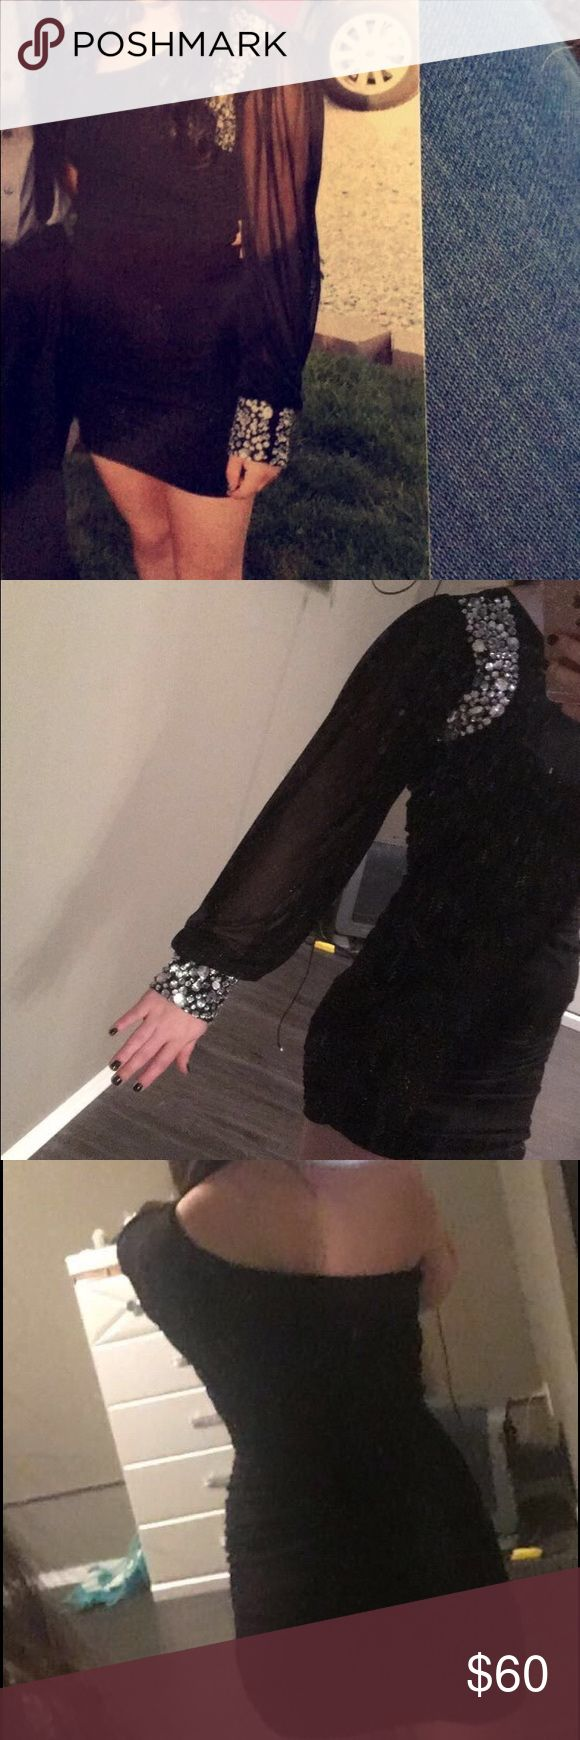 Homecoming Dress/ Party Dress Black skin tight dress , see through sleeve w/ gems , size 2, worn once, like brand new Dresses Mini